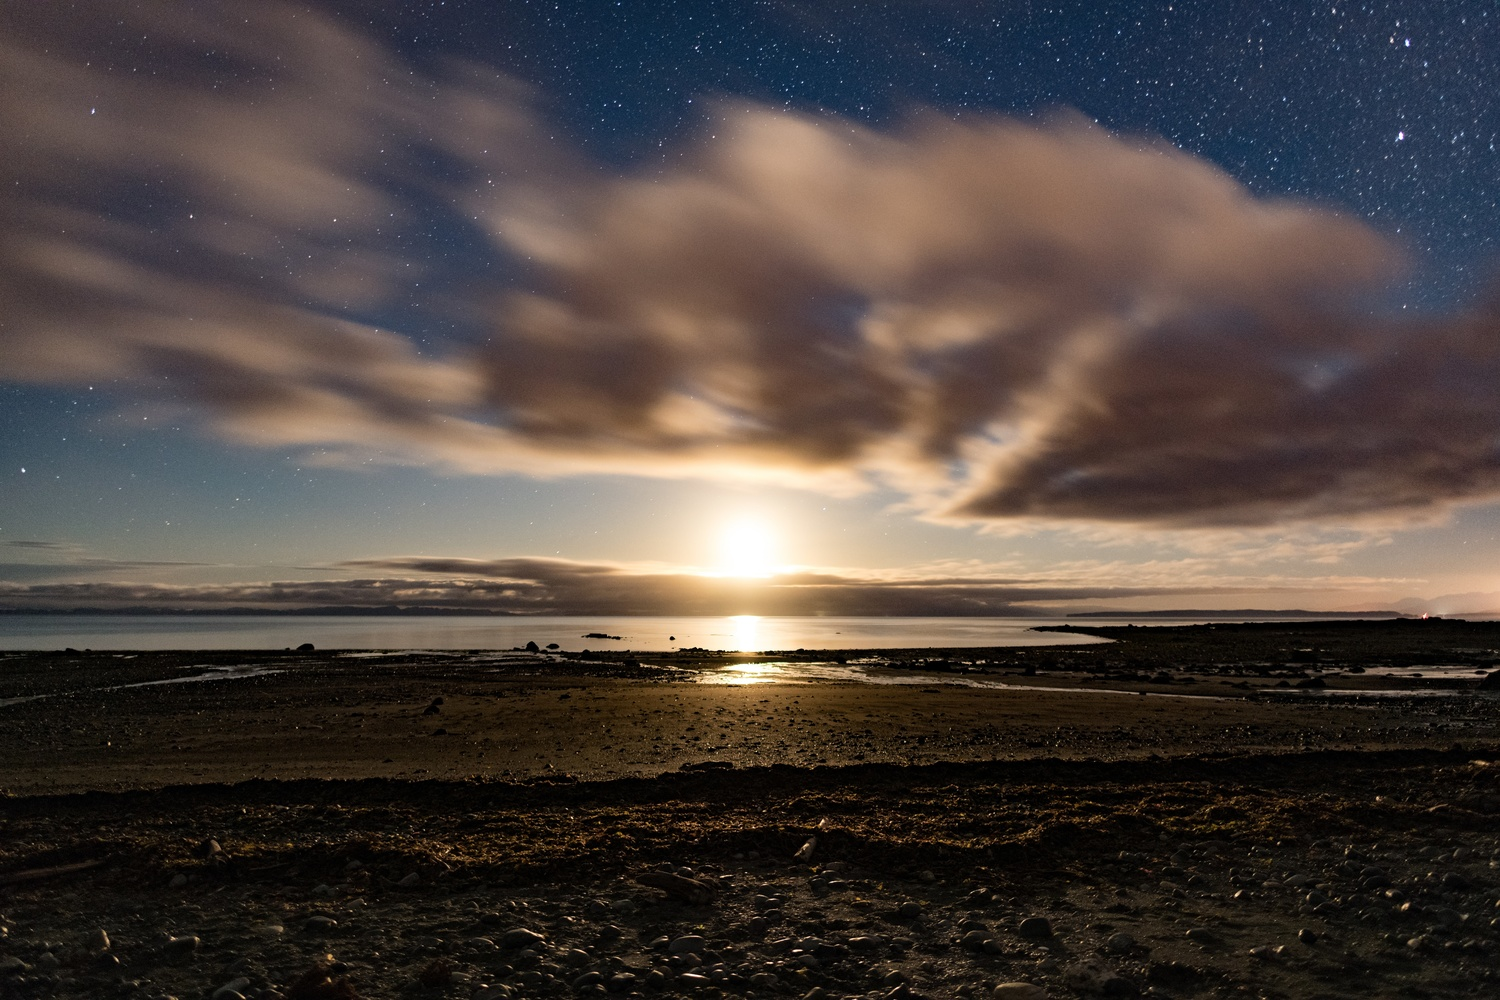 Moonrise by Bodkin's Best Photography